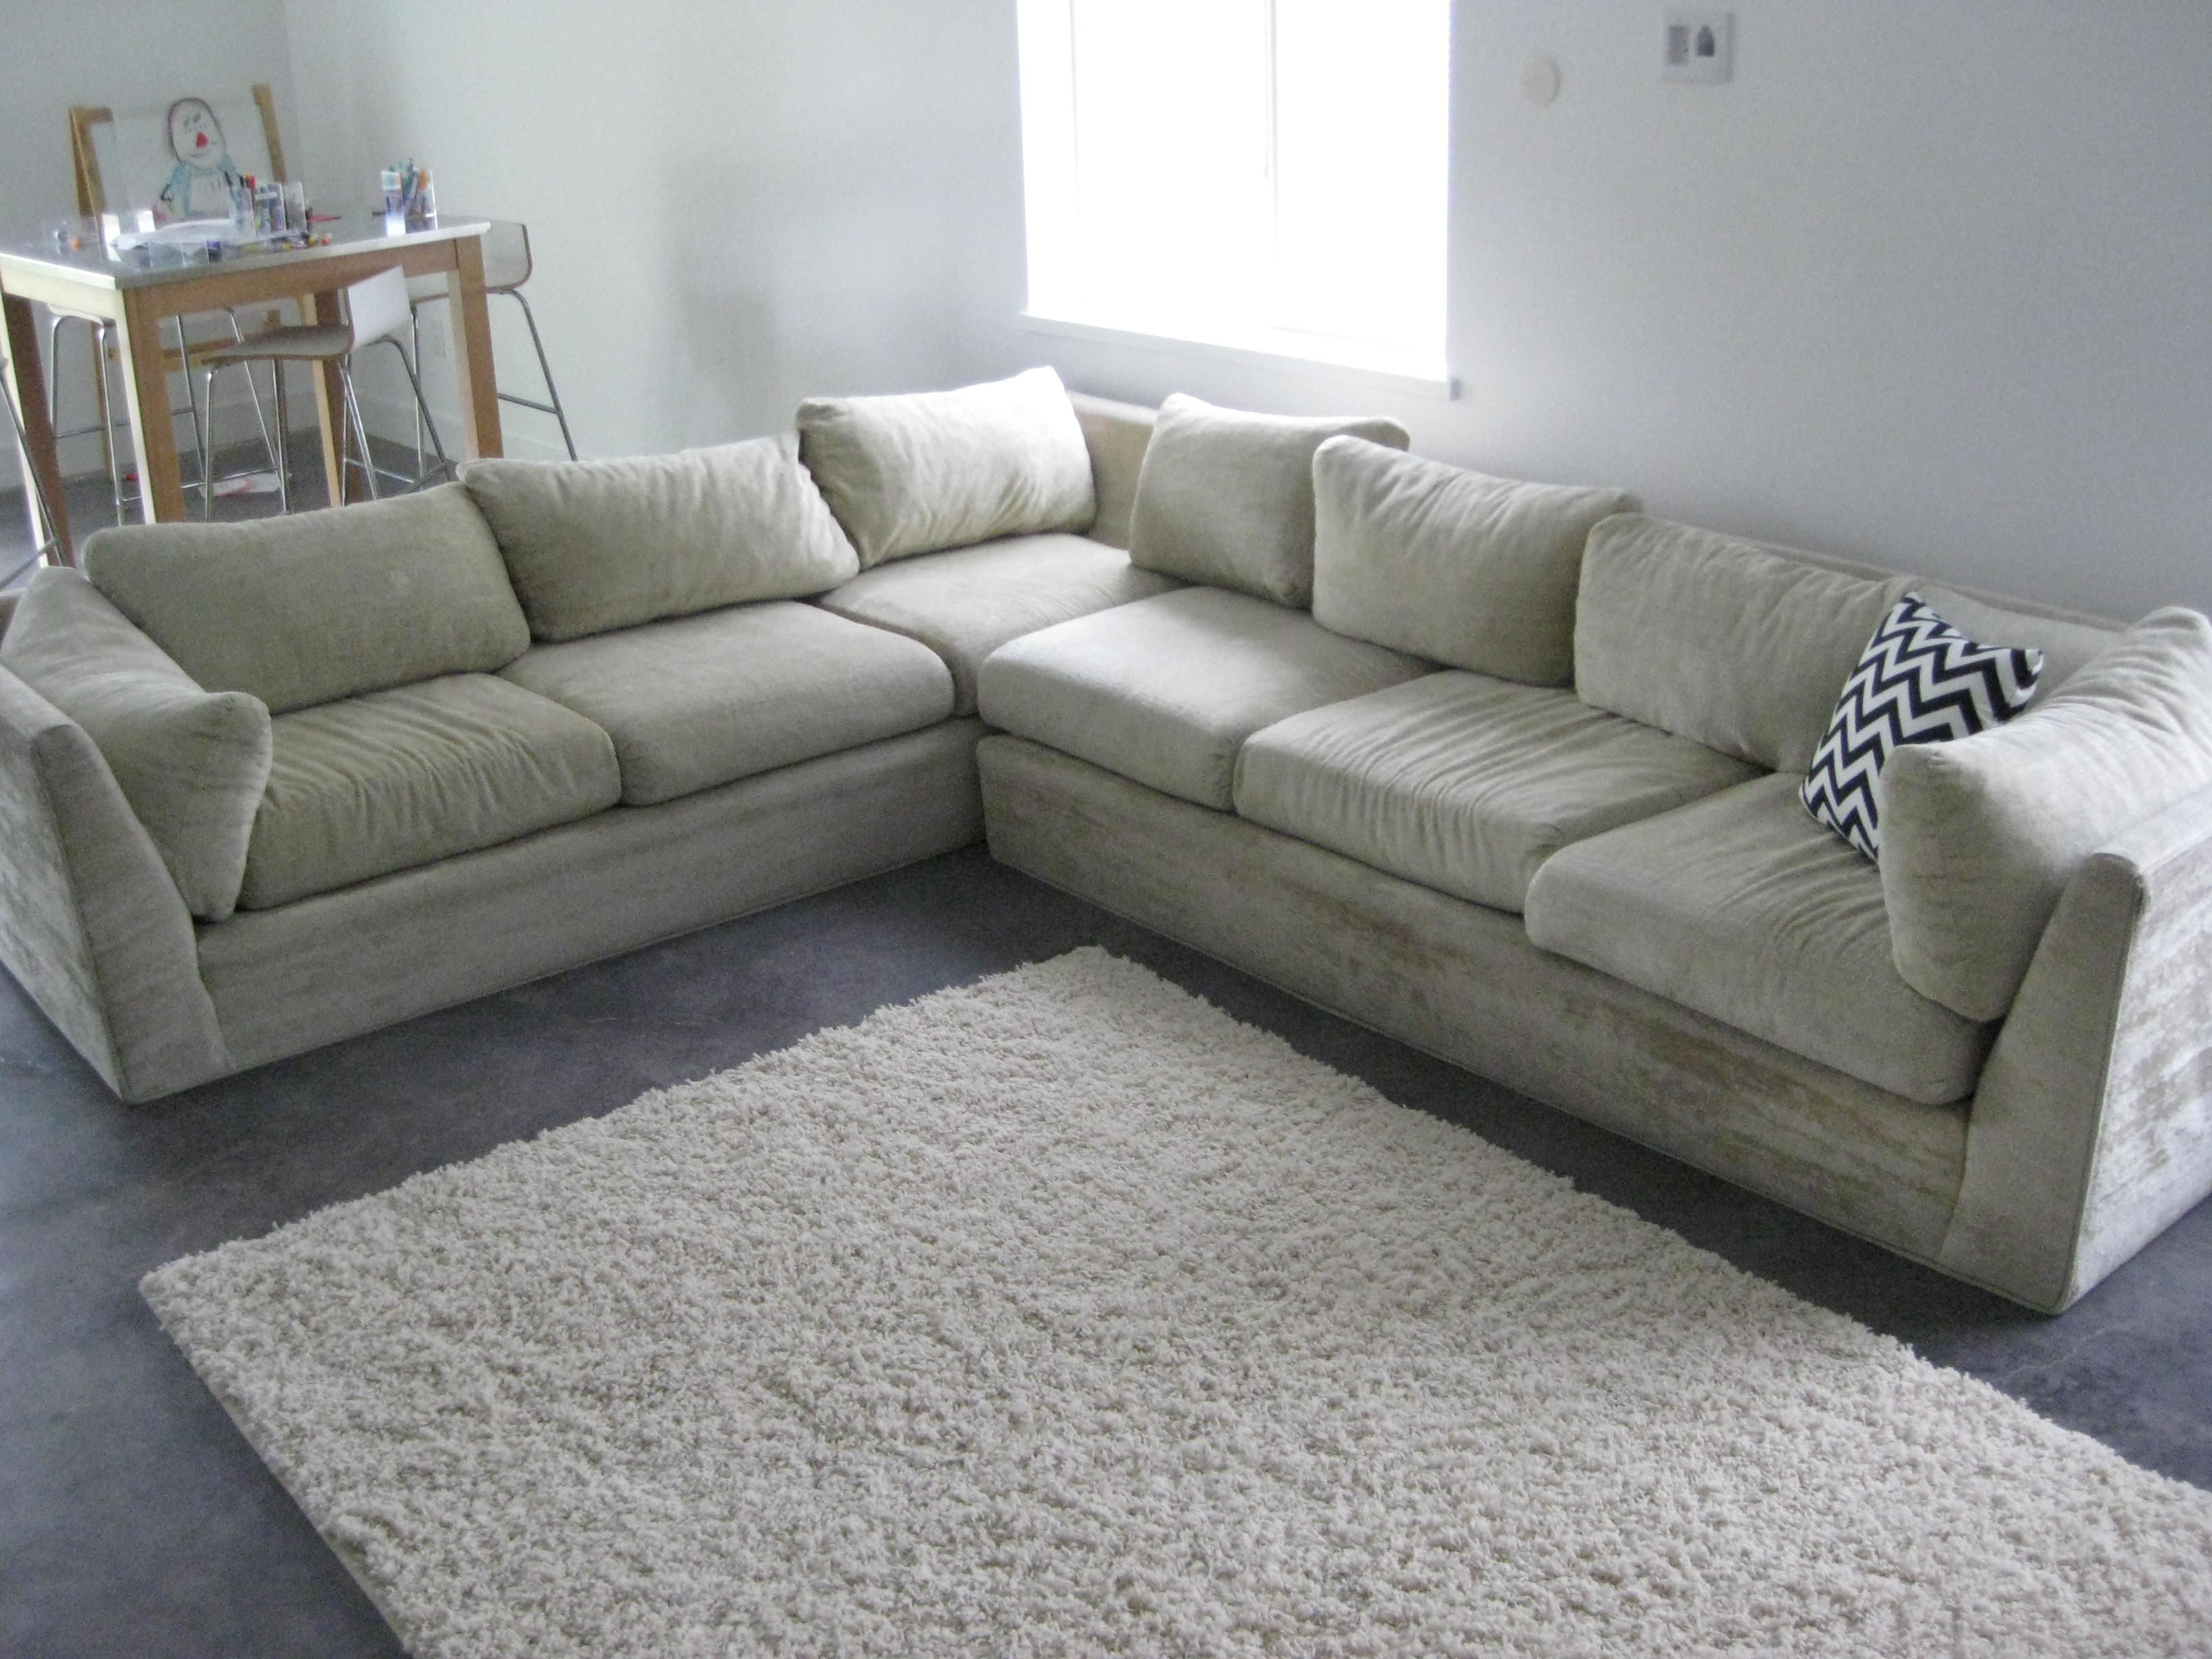 40 year old sofa sectional reupholstered Reupholster loveseat